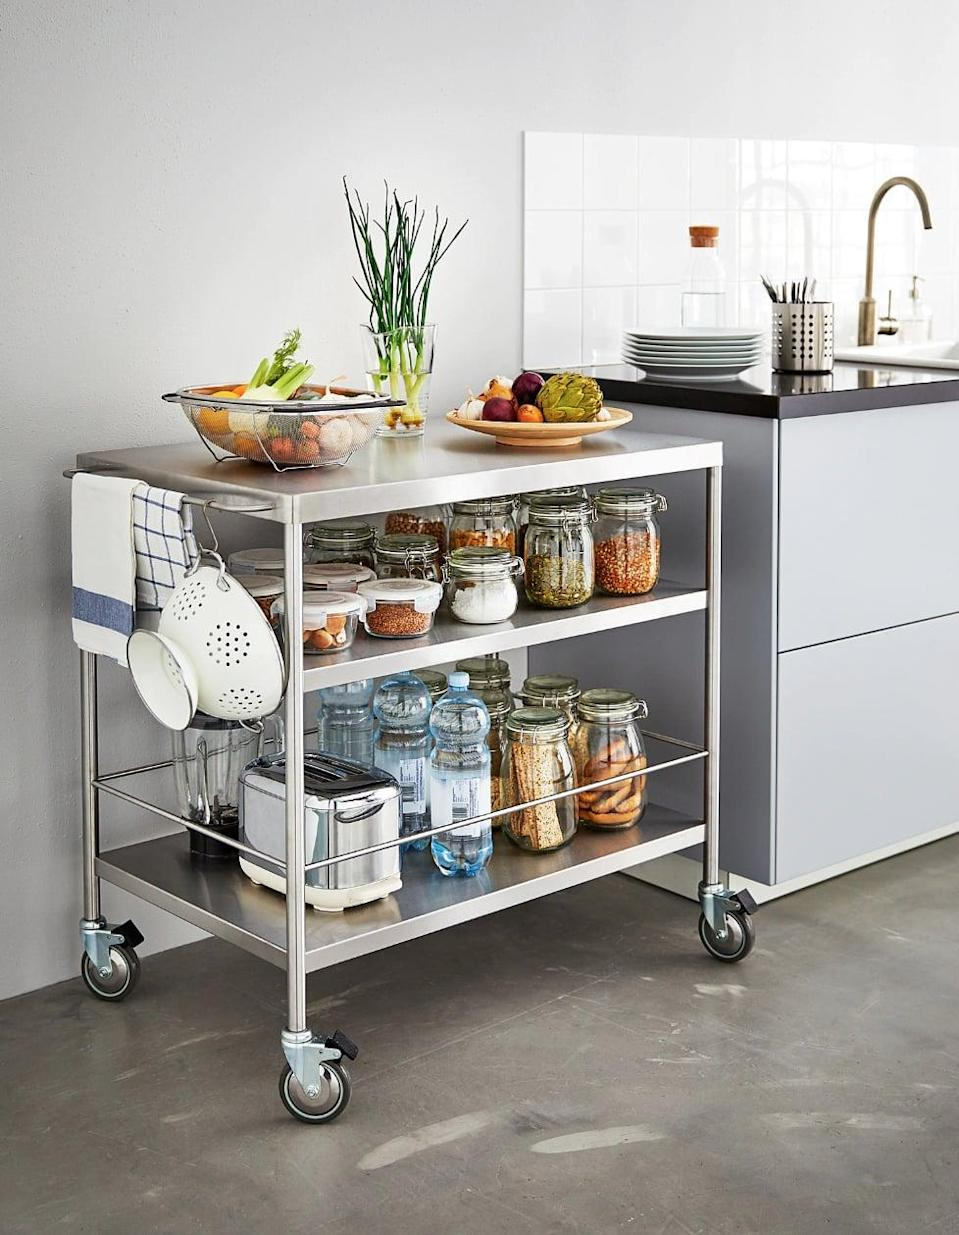 "<p>You will never have to worry about running out of storage when you have the <a href=""https://www.popsugar.com/buy/Flytta%20Kitchen%20Cart-446998?p_name=Flytta%20Kitchen%20Cart&retailer=ikea.com&price=179&evar1=casa%3Aus&evar9=46151613&evar98=https%3A%2F%2Fwww.popsugar.com%2Fhome%2Fphoto-gallery%2F46151613%2Fimage%2F46152187%2FFlytta-Kitchen-Cart&list1=shopping%2Cikea%2Corganization%2Ckitchens%2Chome%20shopping&prop13=api&pdata=1"" rel=""nofollow noopener"" target=""_blank"" data-ylk=""slk:Flytta Kitchen Cart"" class=""link rapid-noclick-resp"">Flytta Kitchen Cart</a> ($179). Use it as an island if you are low on space or store it in the pantry when it's not in use.</p>"